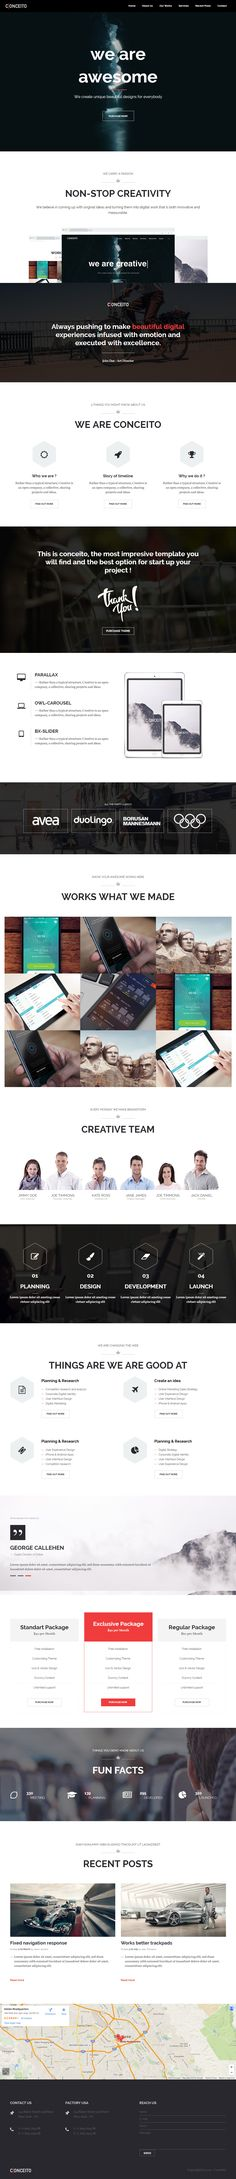 Muse Mobile Templates